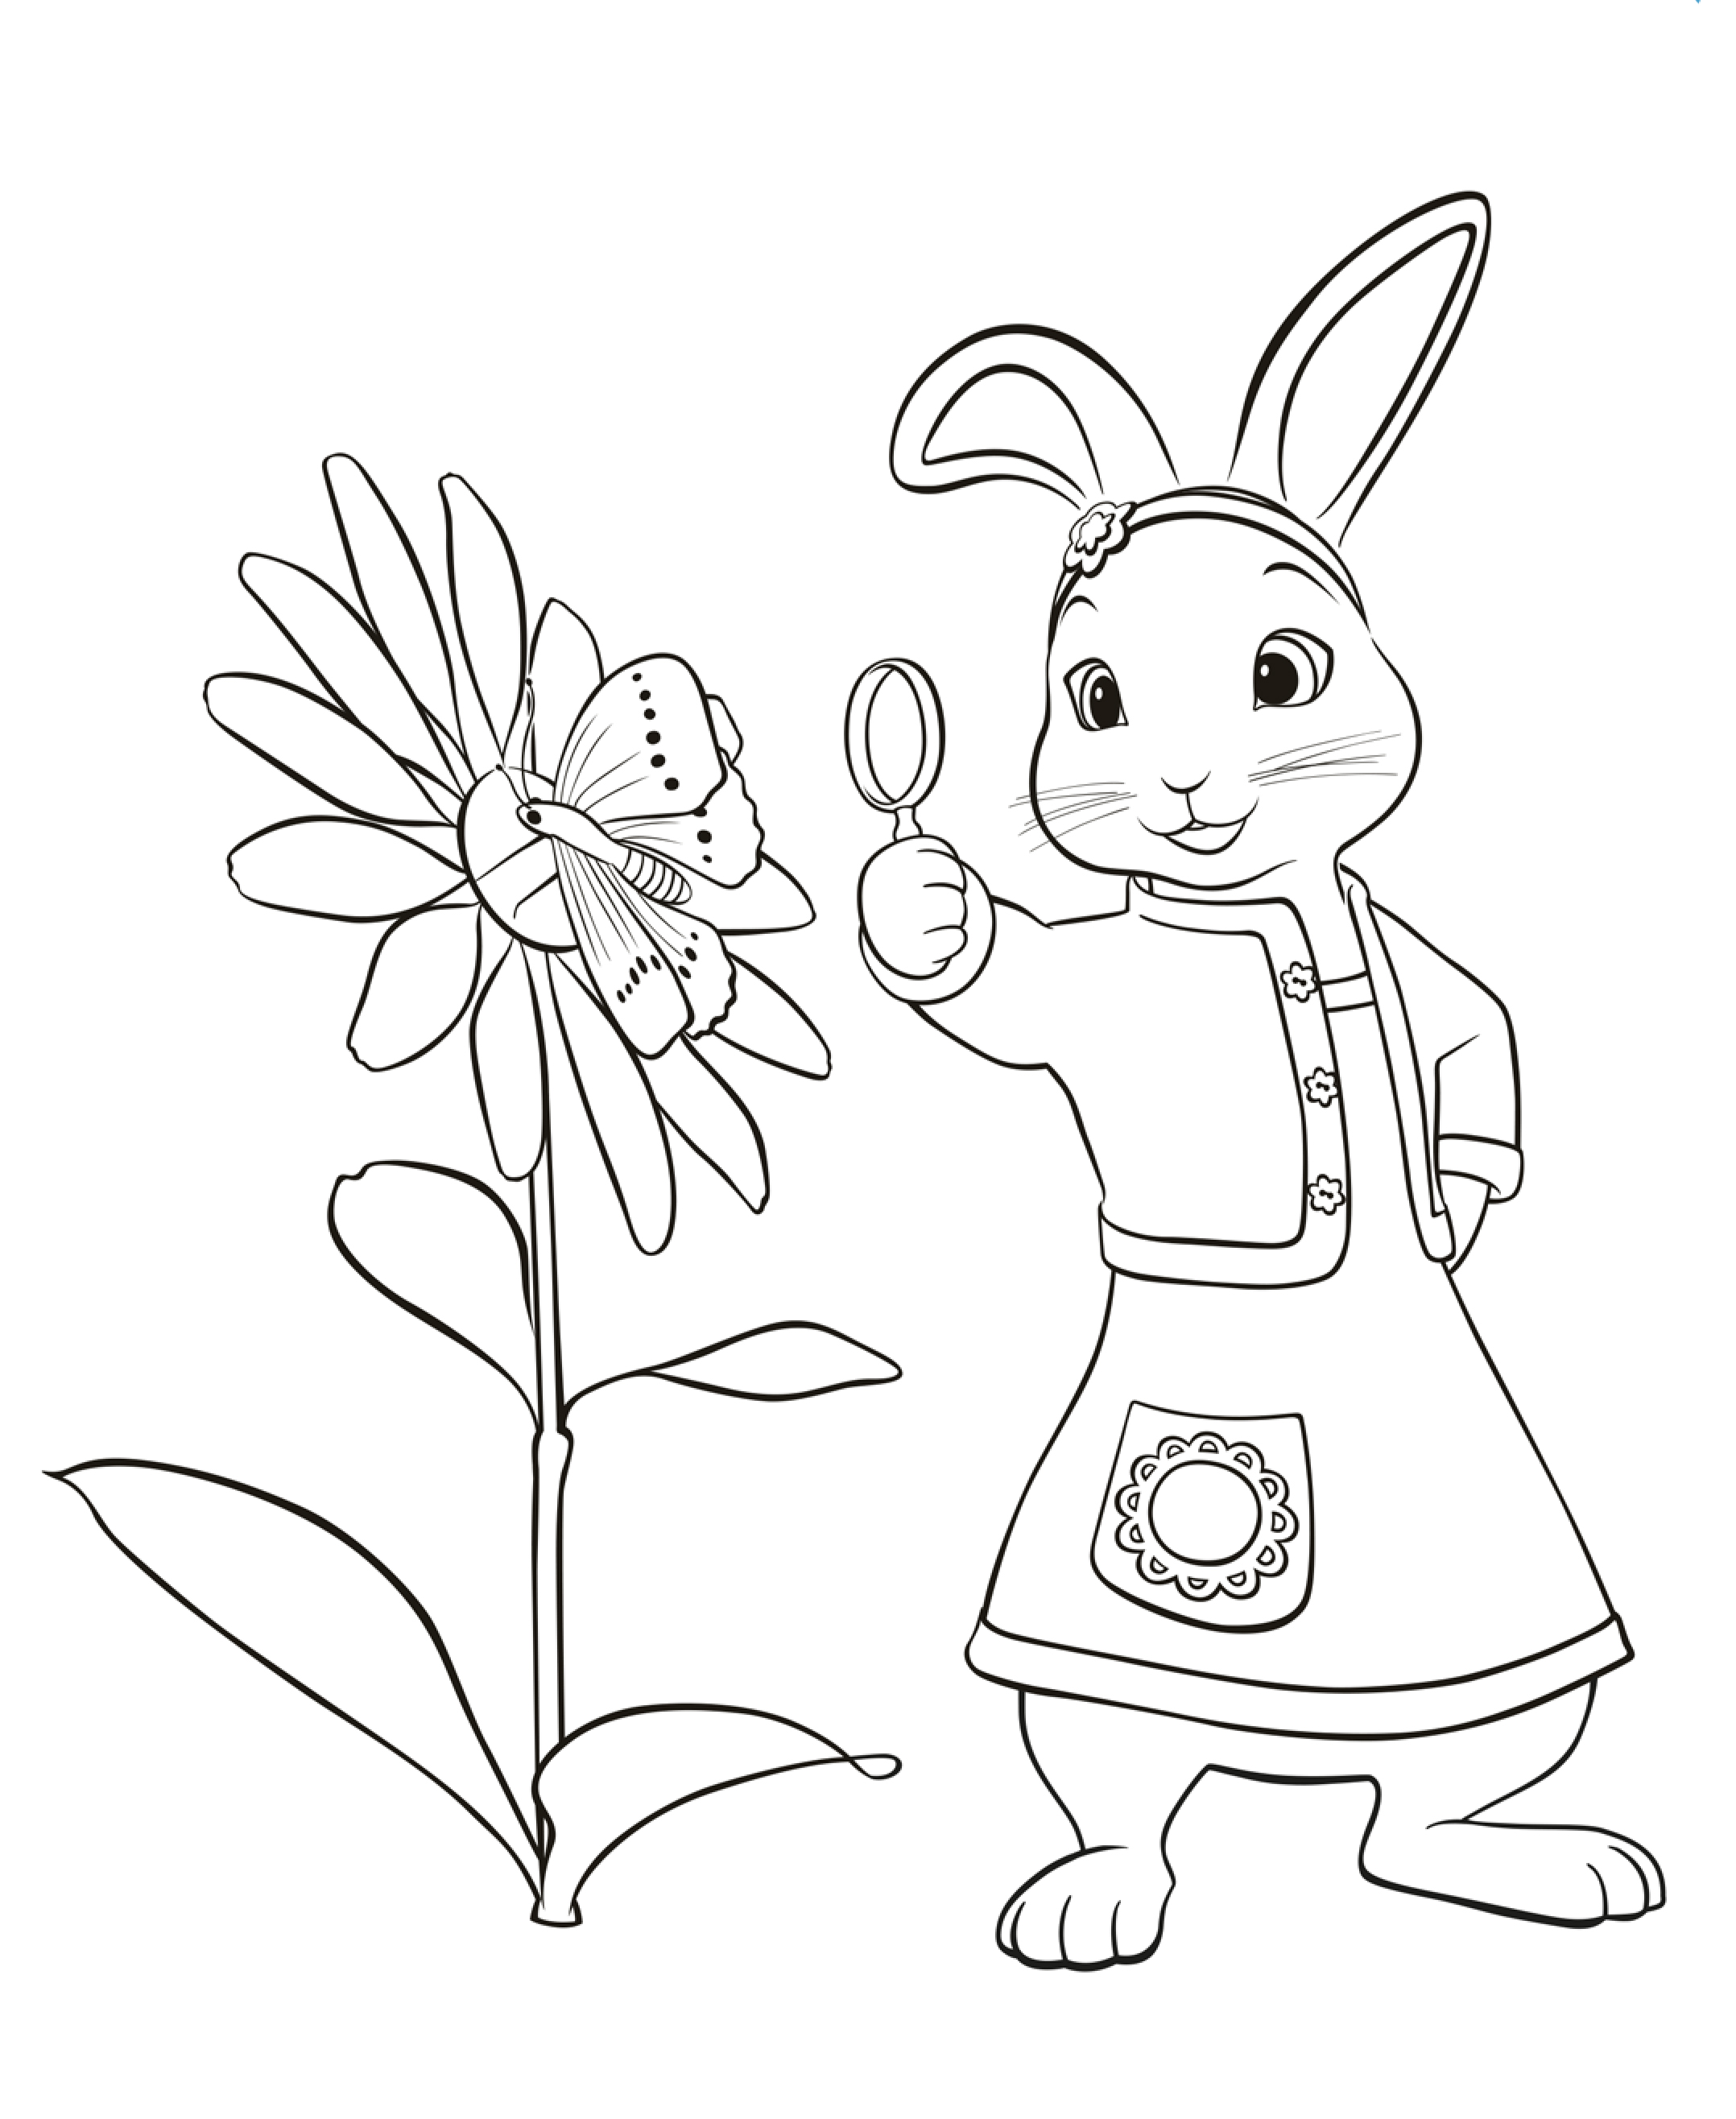 Bunny Rabbit Coloring Pages | Ak74